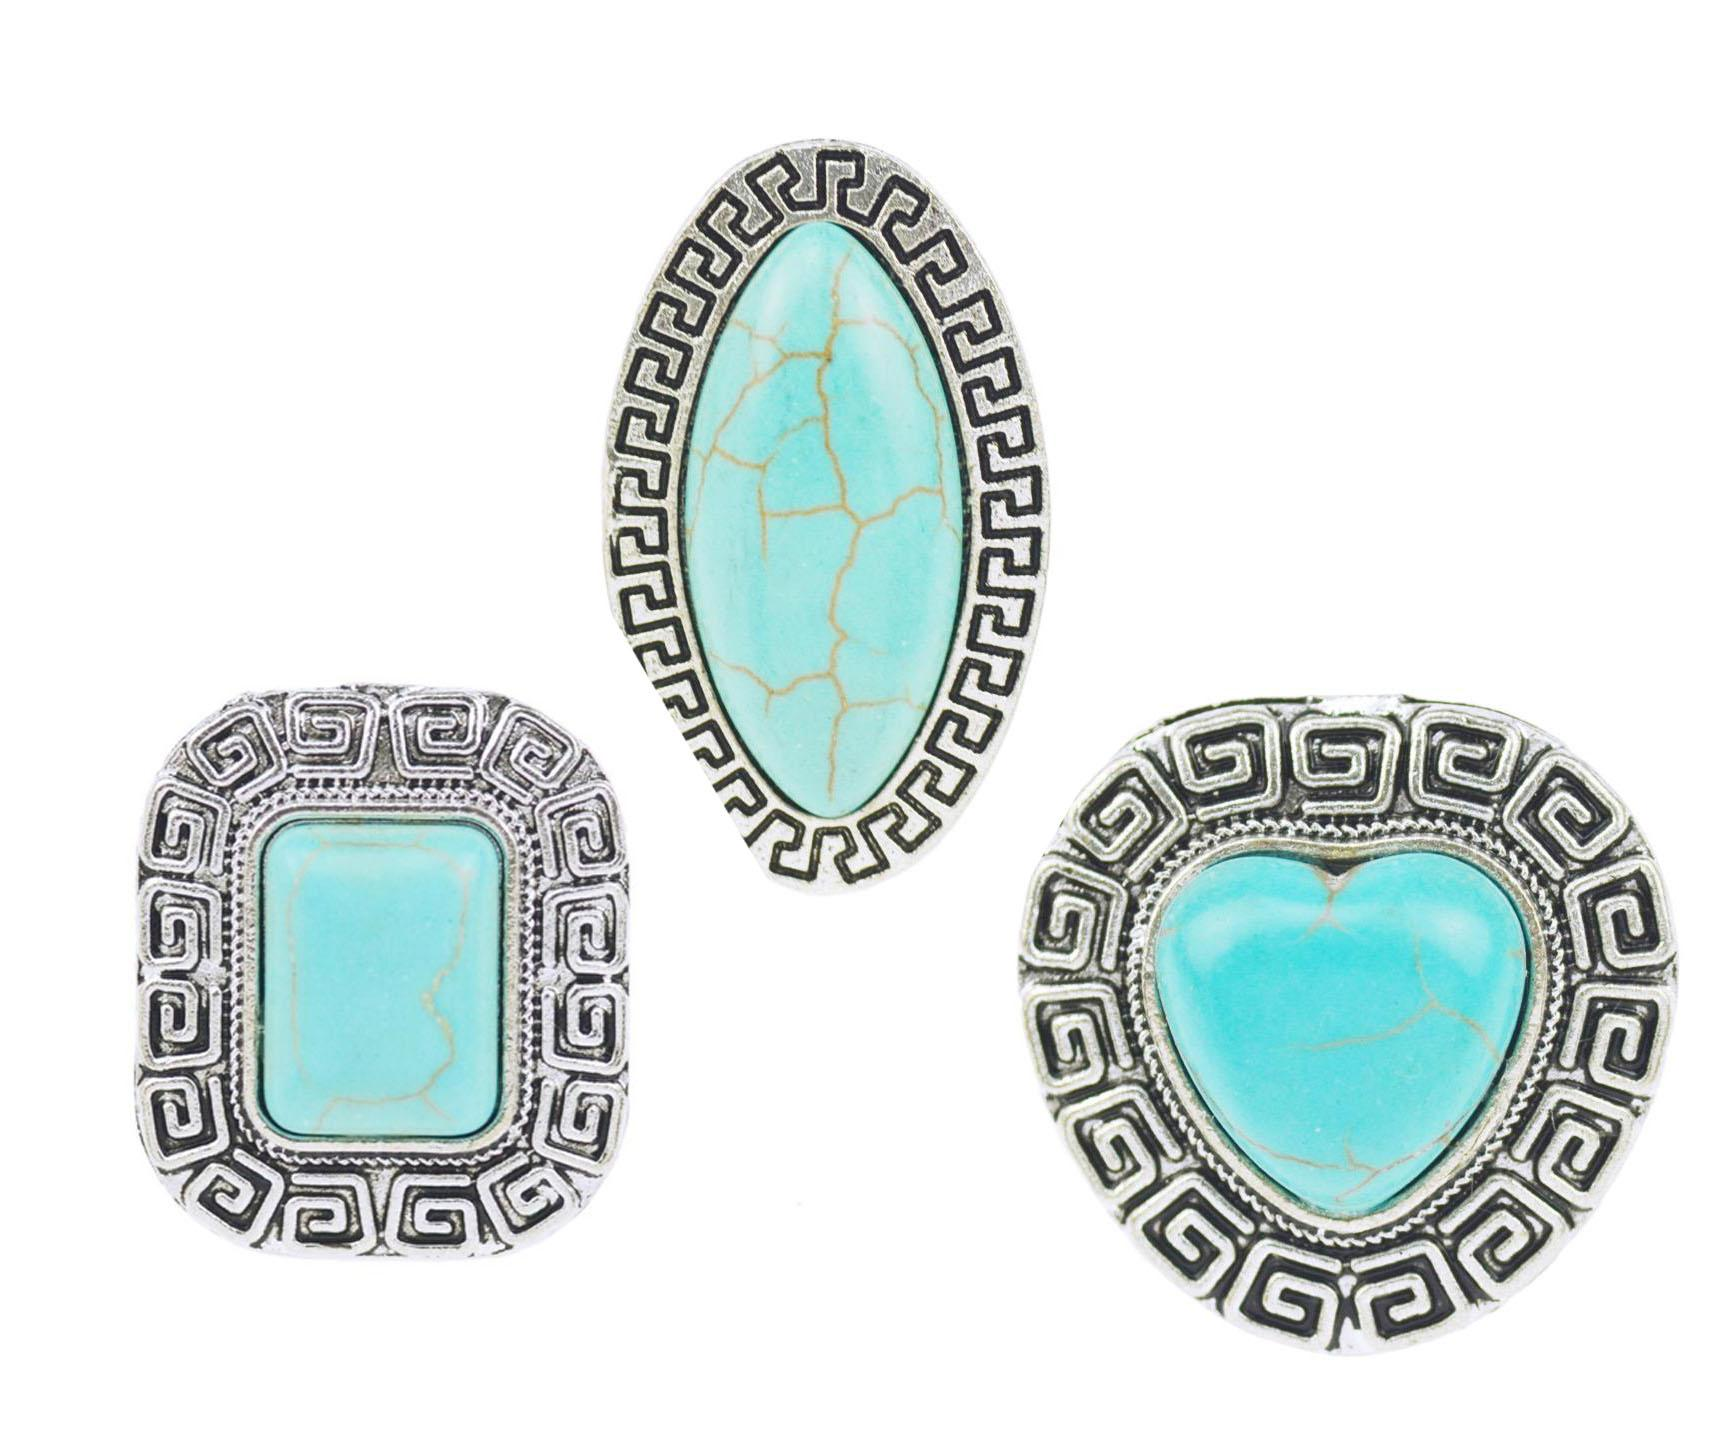 image treat product lucky the rings simply turquoise different n dip of